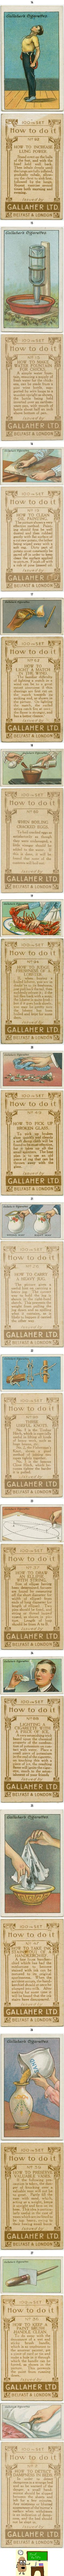 100-Year-Old Life Hacks That Are Still Surprisingly Useful To This Day [Part 2]